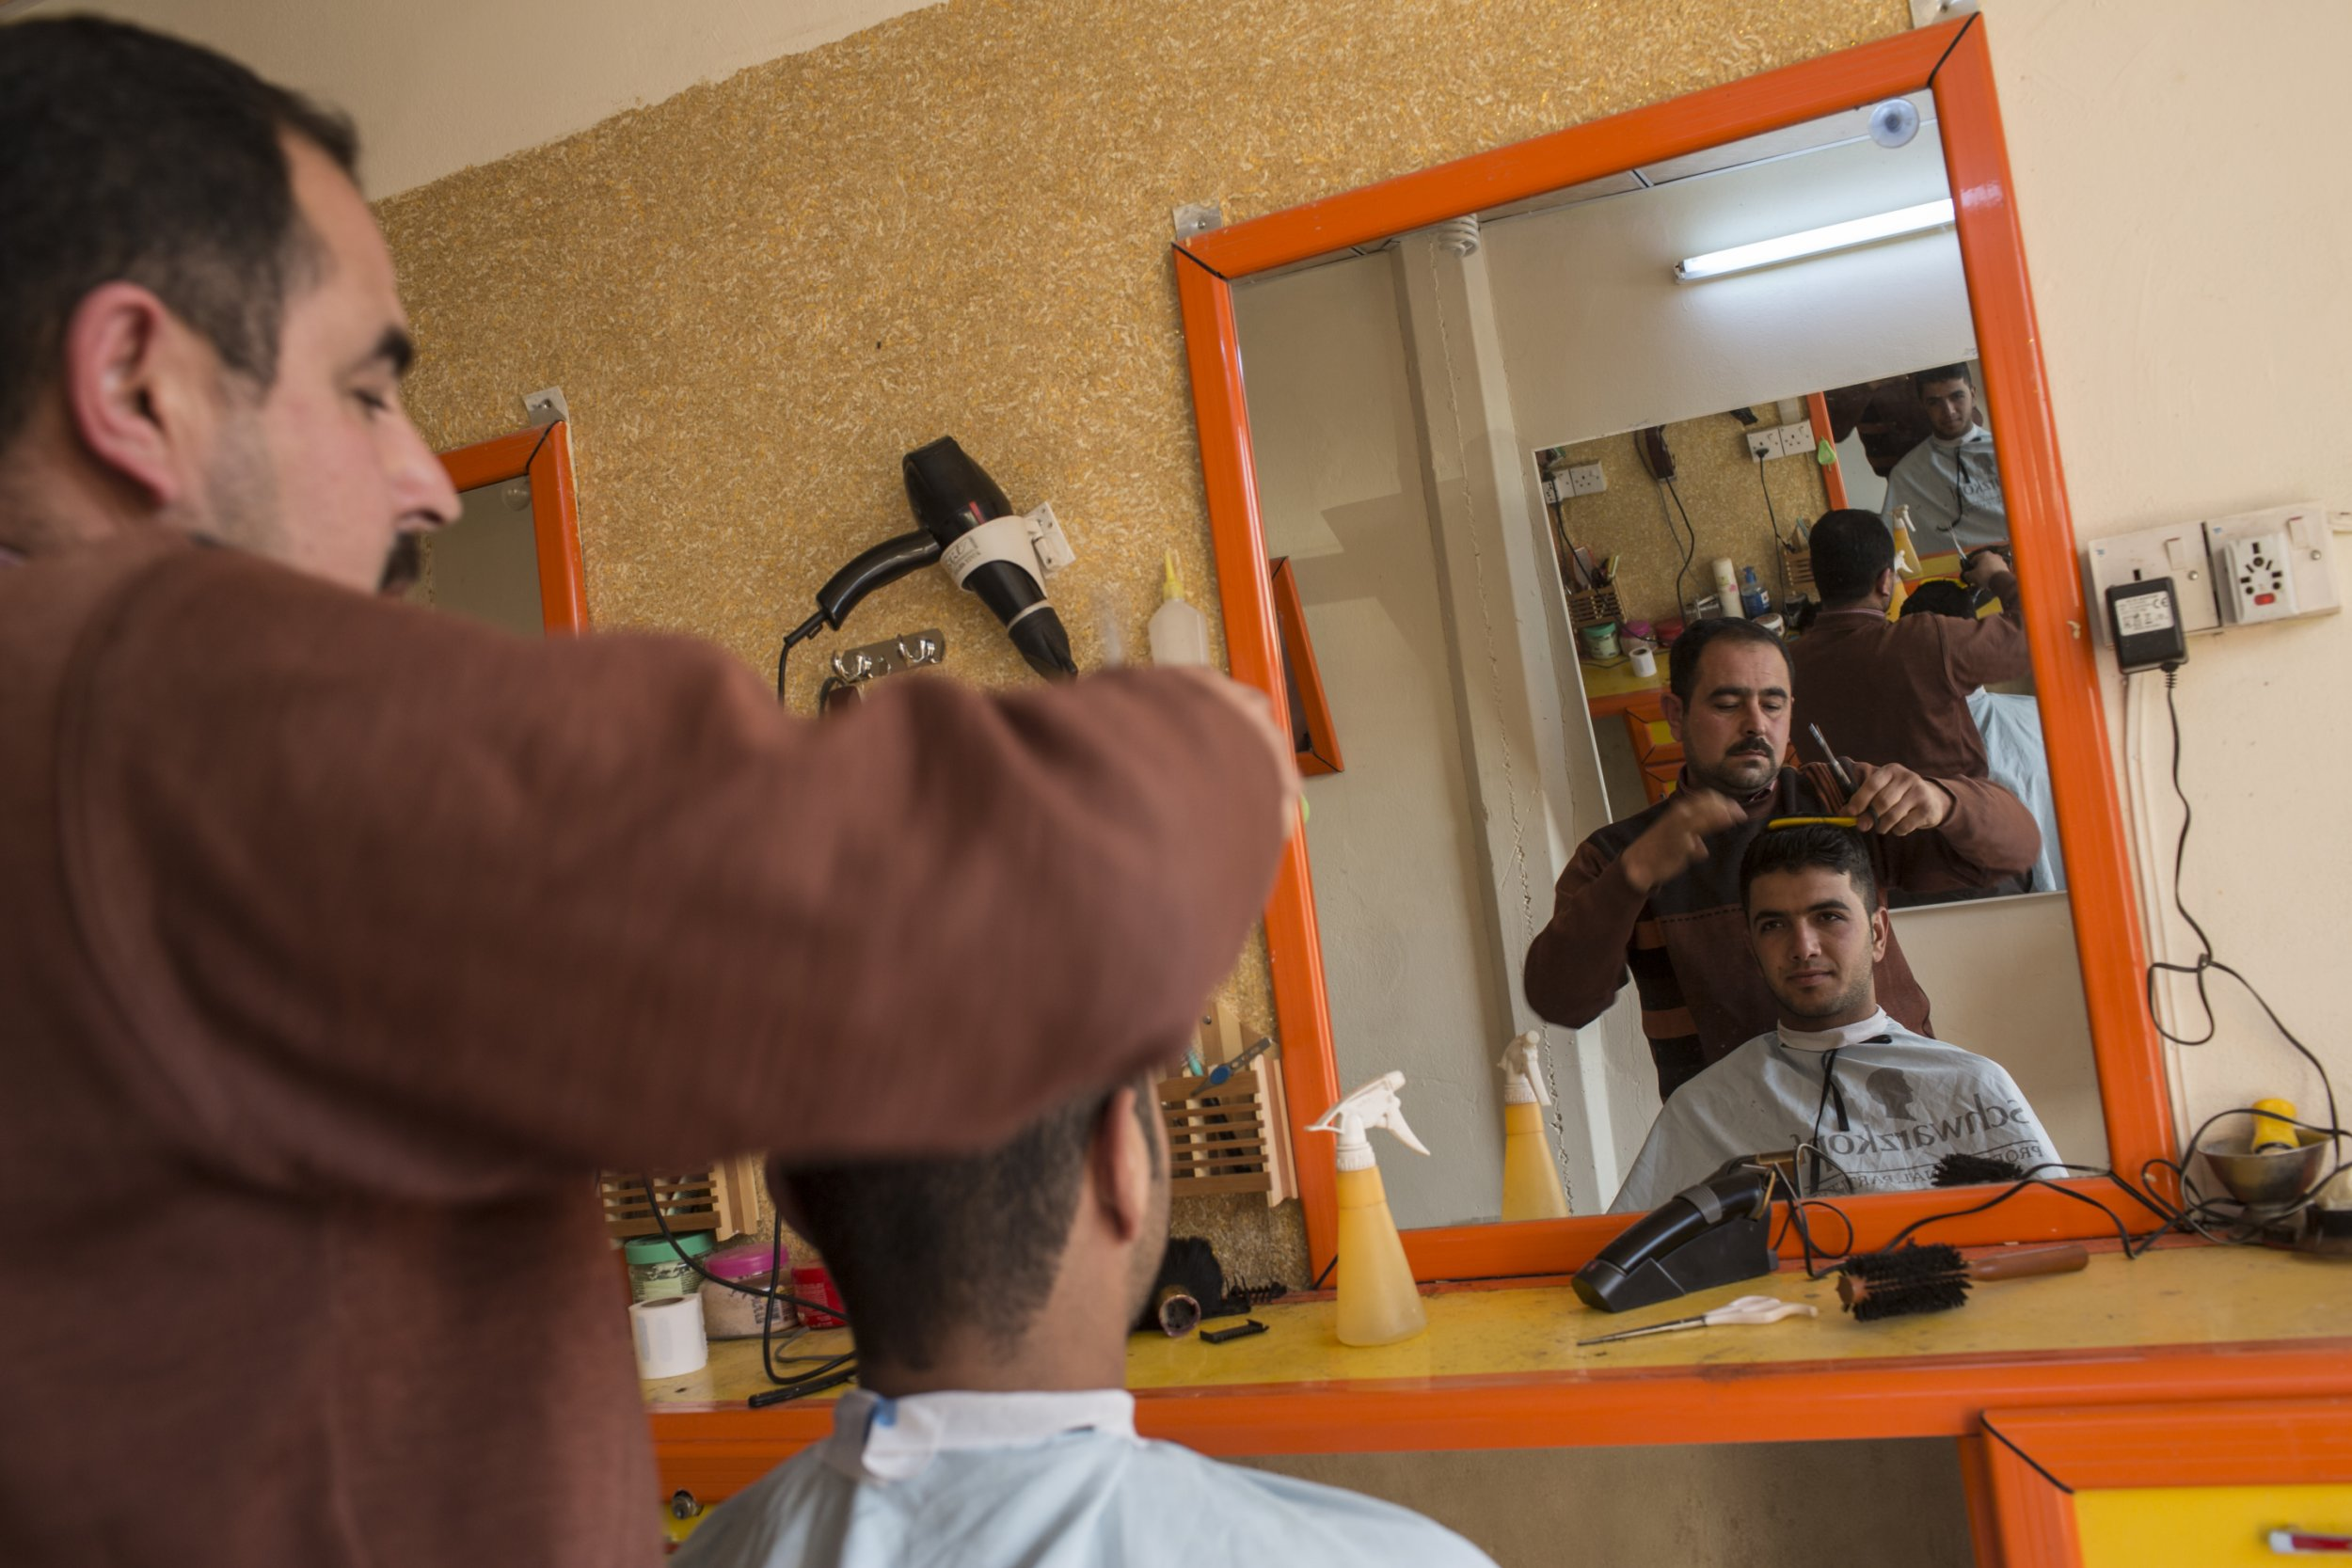 """Barber Saed Ahmed, 38, in his hair salon in Jalawla, Iraq. Saed was given a loan by Oxfam to repair his """"golden scissors"""" salon after it was damaged during the ISIS occupation of Jalawla.nThe town was was controlled by ISIS between August and November 2014. Oxfam has been helping business owners get back on their feet through small loans and paying people to undertake works to improve the town."""